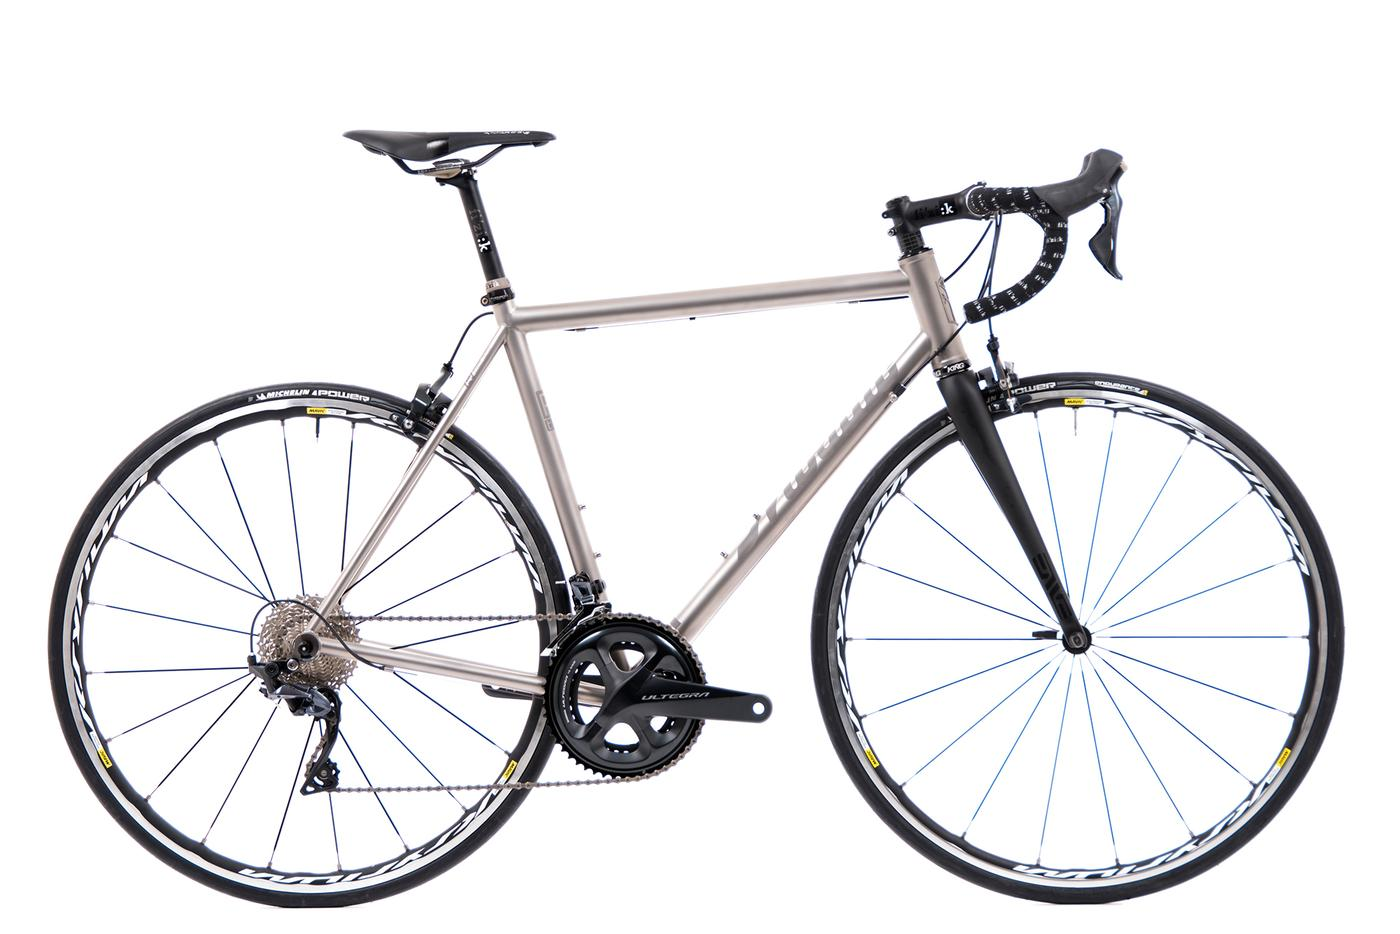 Mosaic Launches their RT-2 Stock Titanium Frame and Completes Program